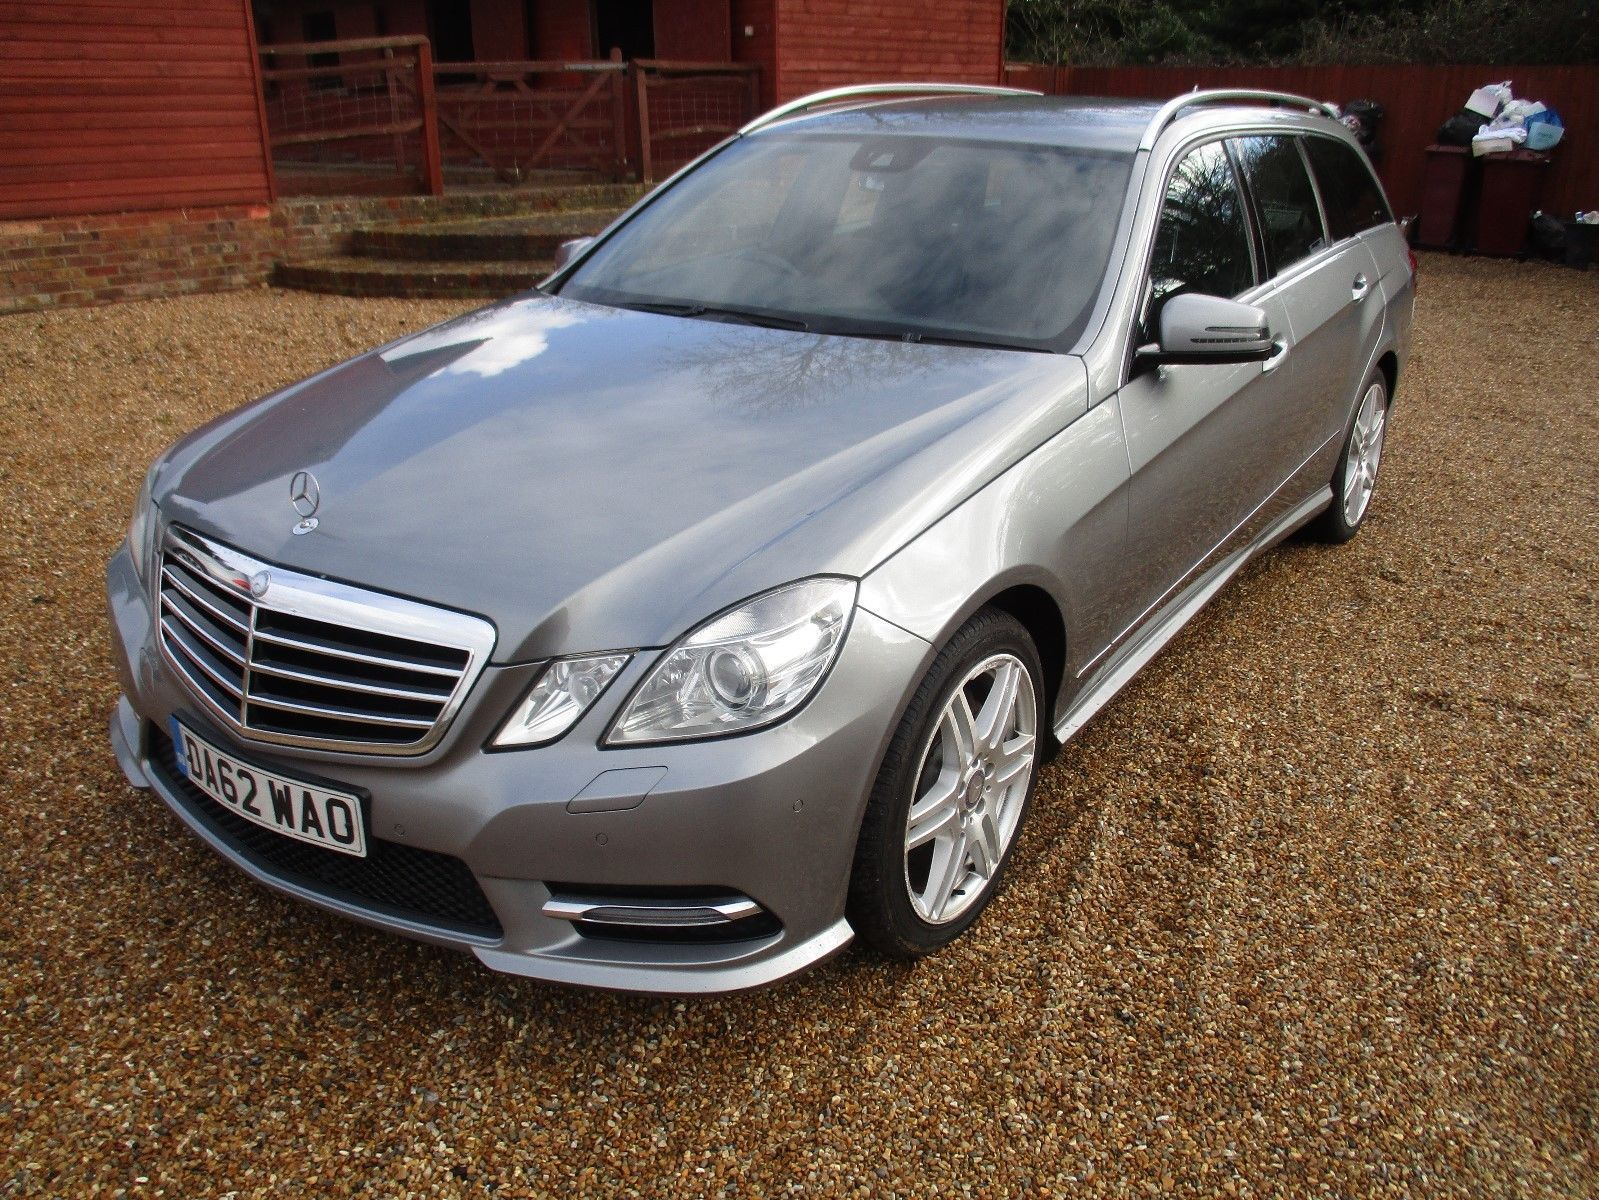 Mercedes Benz Vehicle Service History >> 2013 Mercedes E Class Estate Full Service History Spares Or Repair